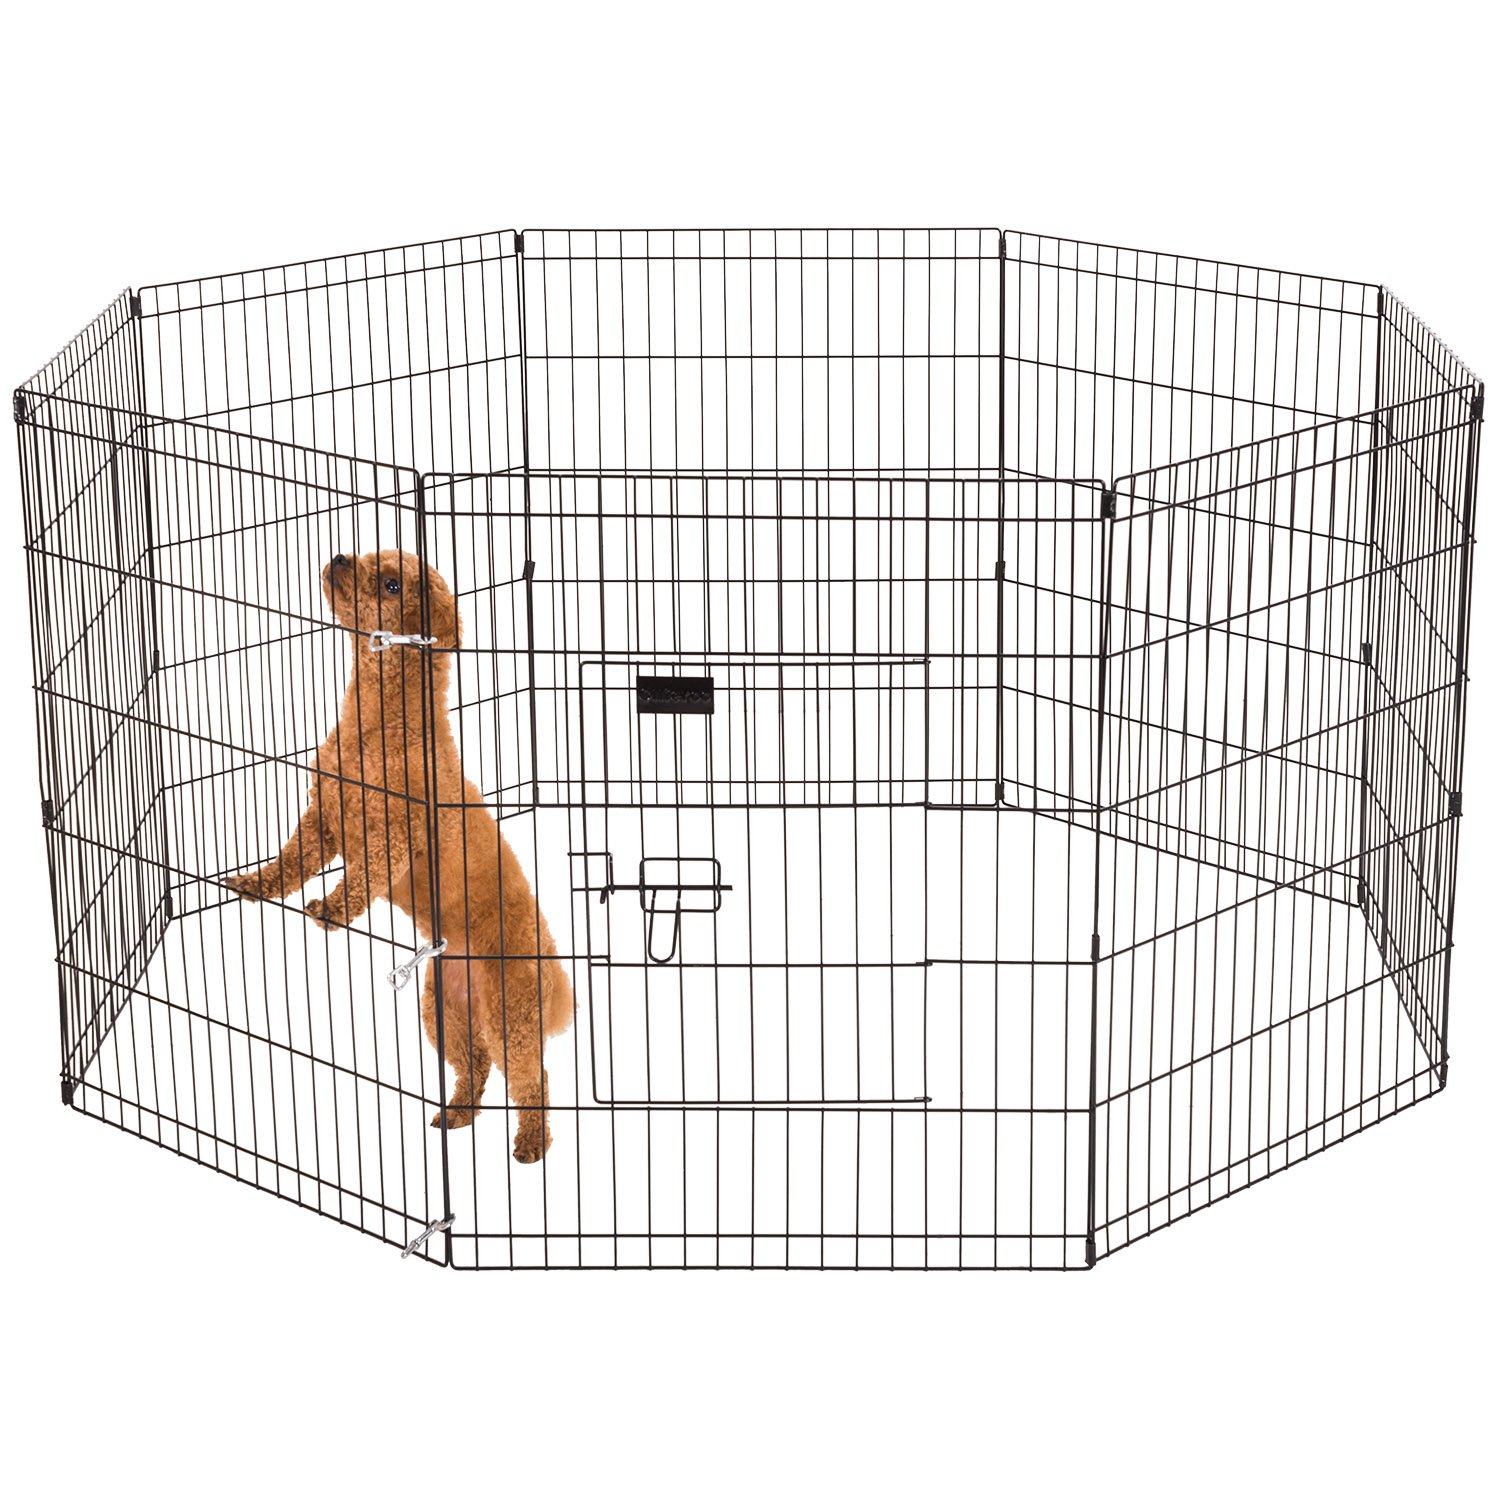 Ollieroo Dog Playpen Exercise Pen Cat Fence Pet Outdoor Indoor Cage 8 Panel Black E-Coat